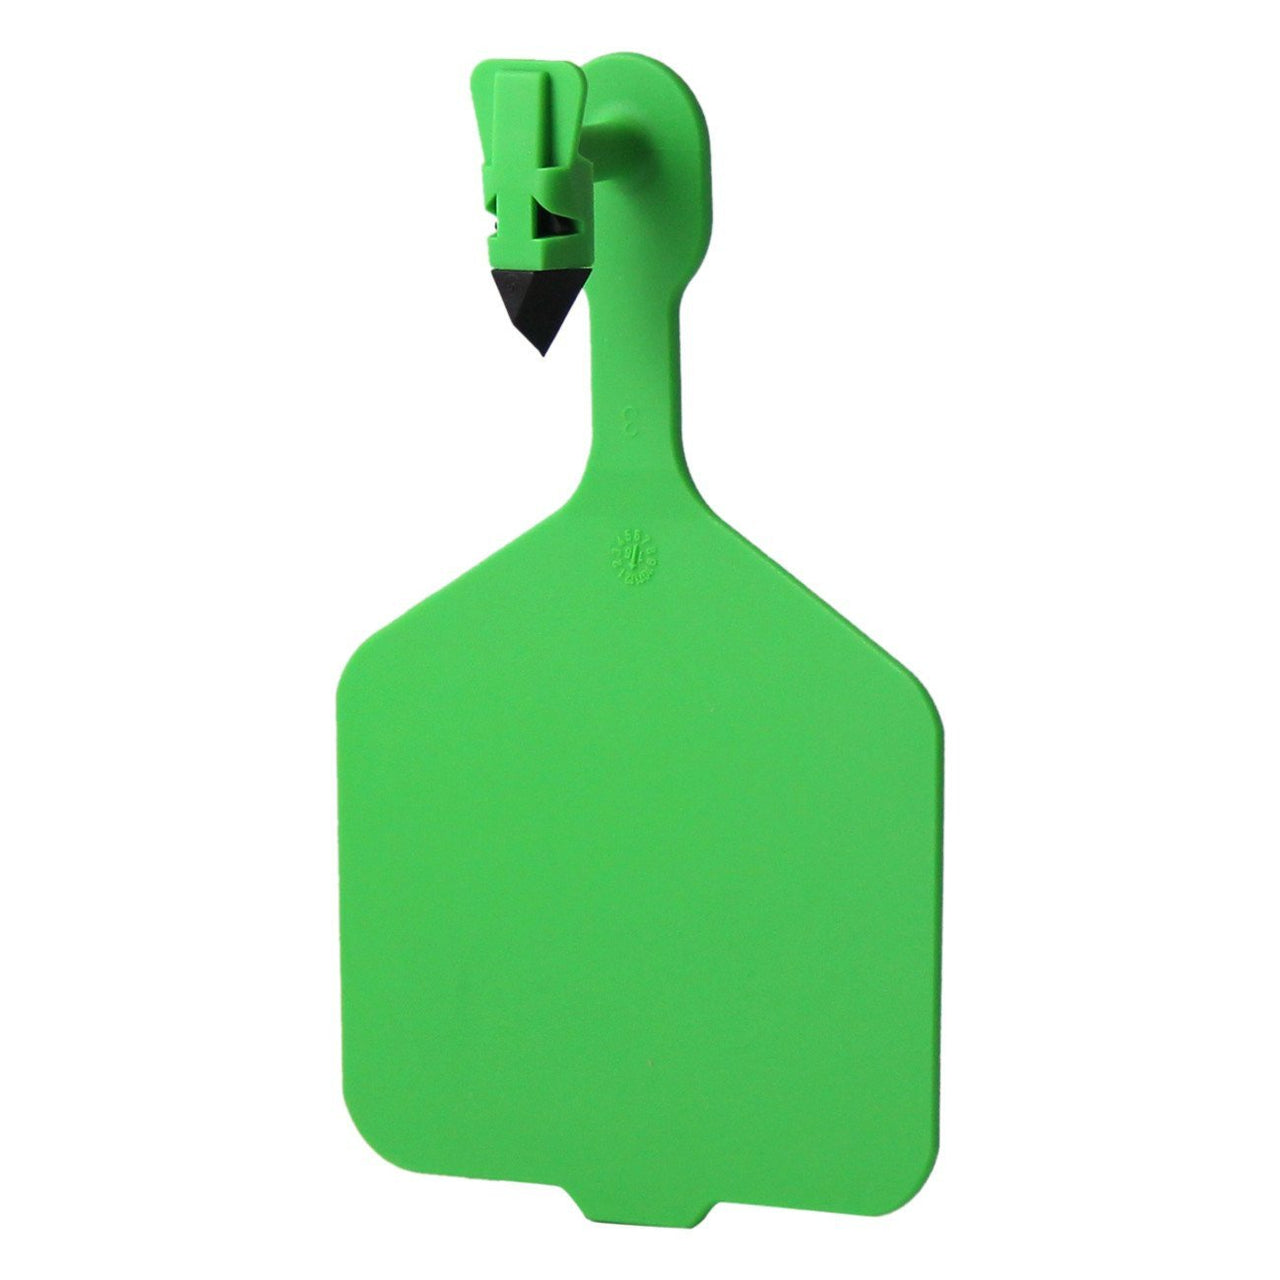 Leader 1Pc Cow Tags Green 25S - Ear Tags Leader Products - Canada